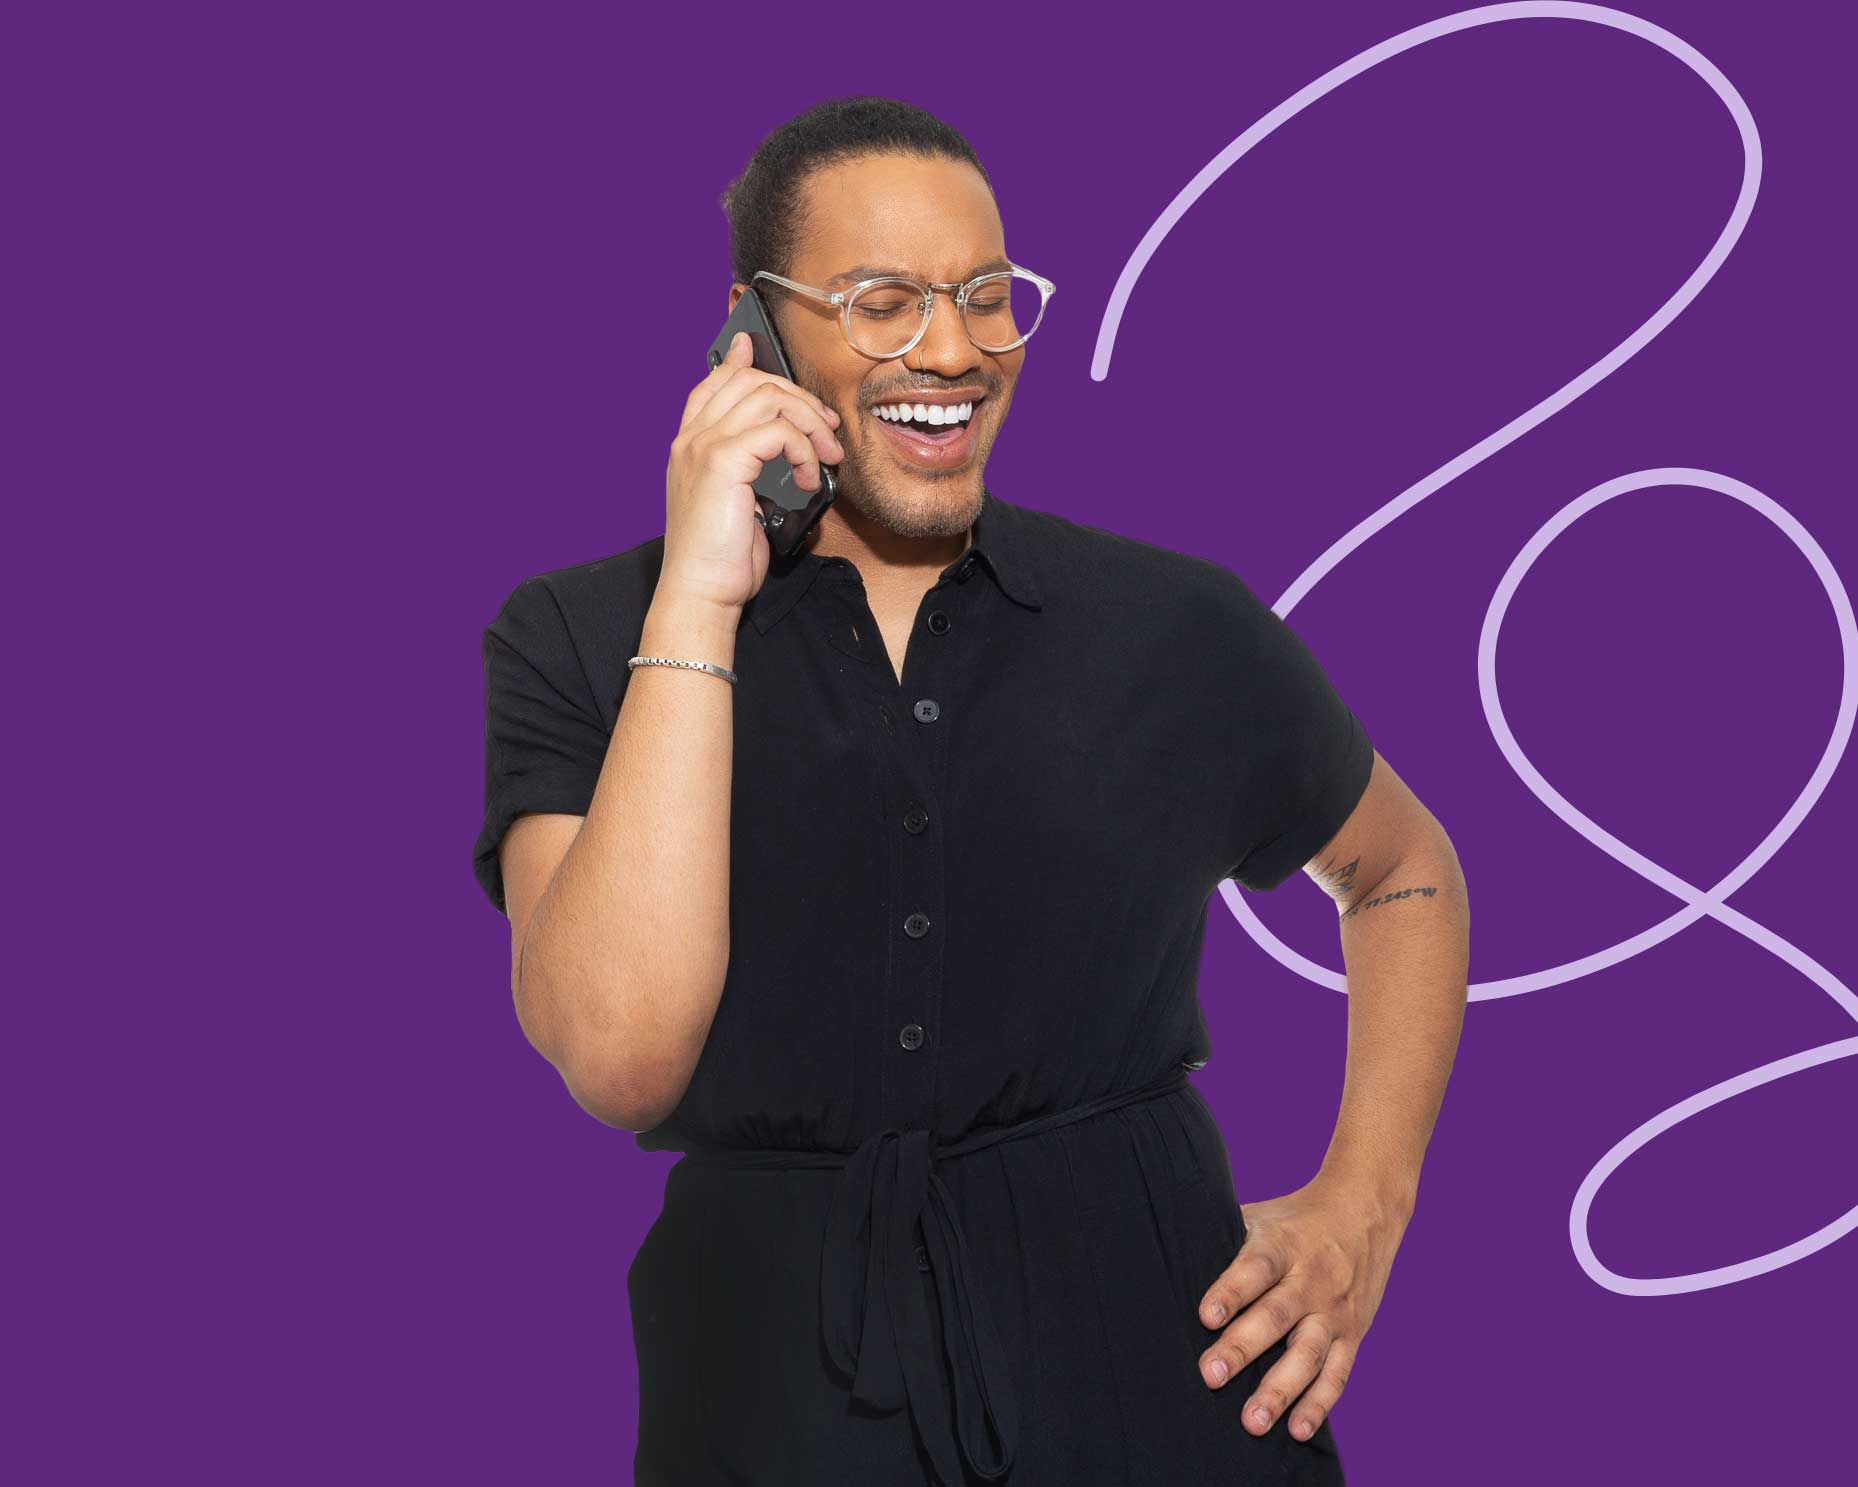 queer model on the phone purple background